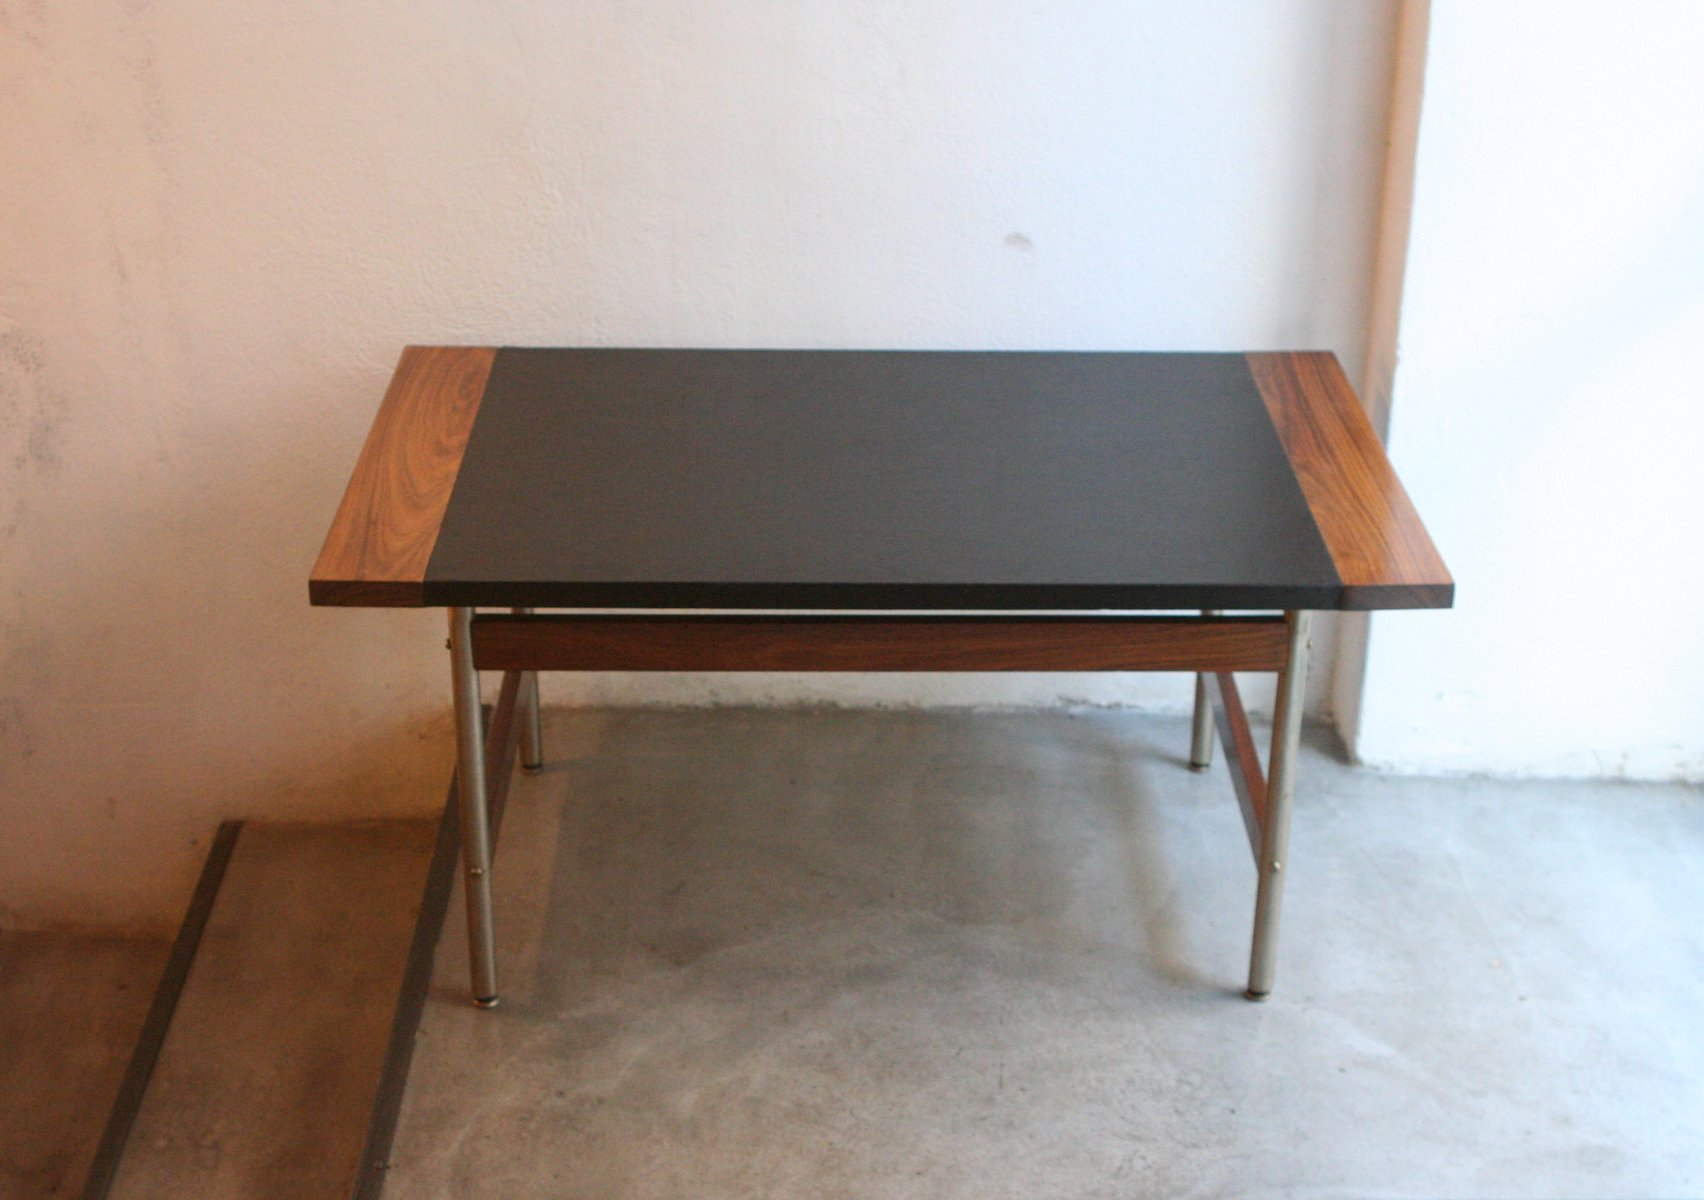 Vintage Rosewood And Leather Coffee Table By Sven Ivar Dysthe For Dokka M Bler For Sale At Pamono